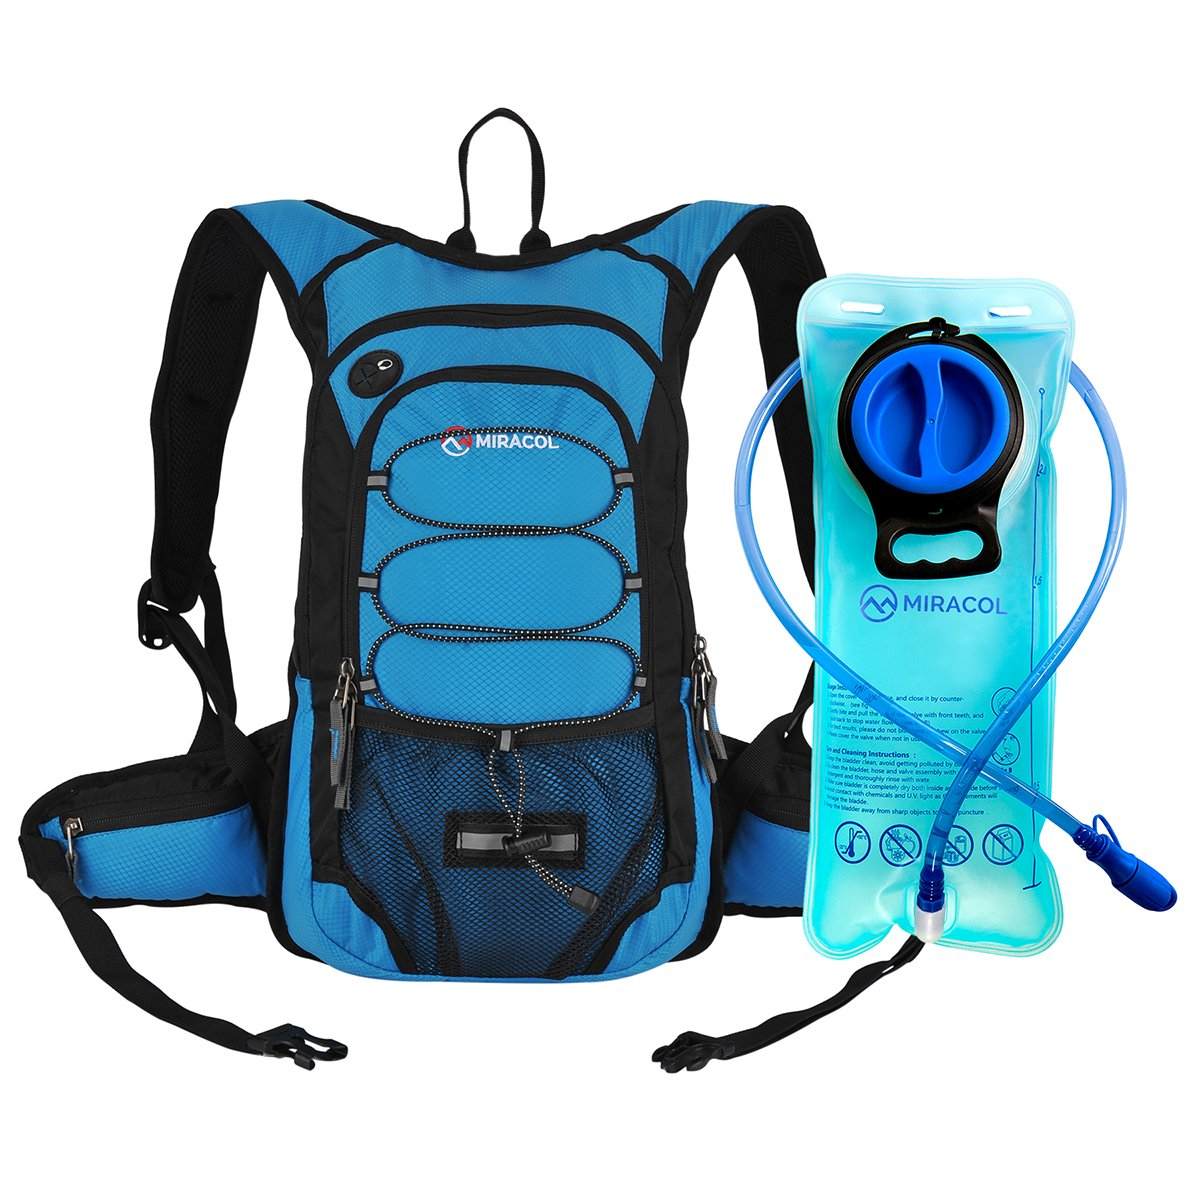 Miracol Hydration Backpack with 2L Water Bladder - Thermal Insulation Pack Keeps Liquid Cool up to 4 Hours – Multiple Storage Compartment– Best Outdoor Gear for Running, Hiking, Cycling and More